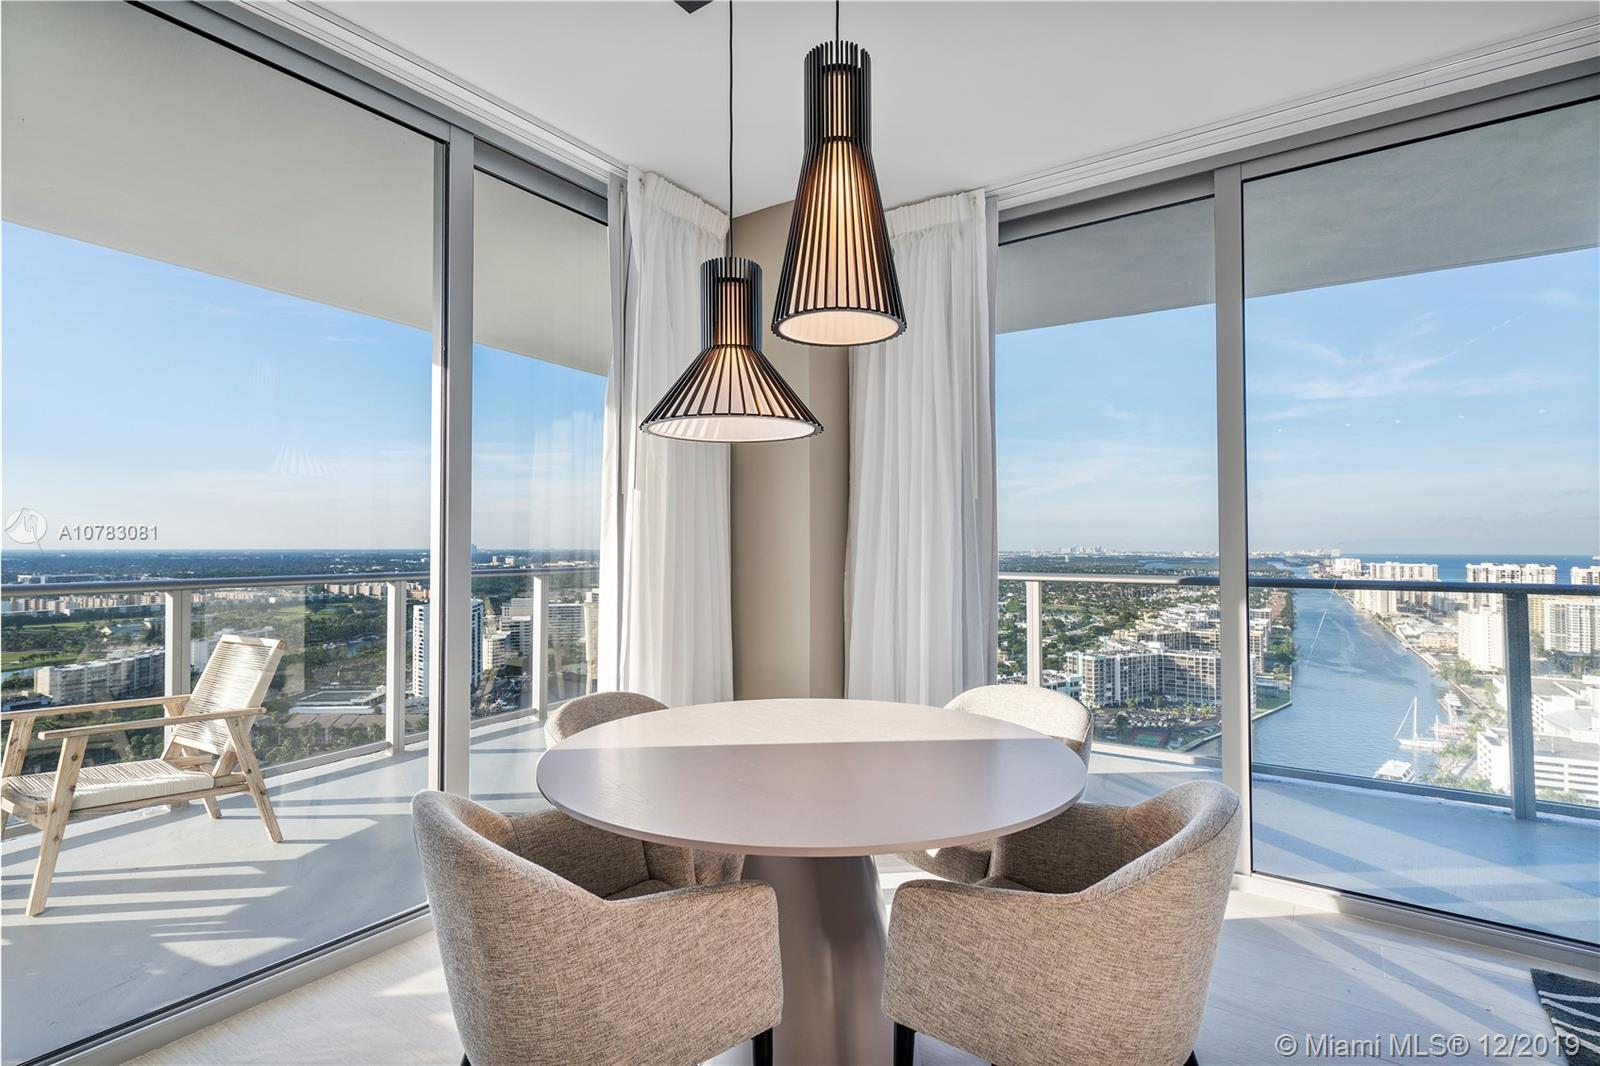 4010 S Ocean Drive, Hollywood, Florida 33019, 2 Bedrooms Bedrooms, ,2 BathroomsBathrooms,Residential Lease,For Rent,4010 S Ocean Drive,A10783081